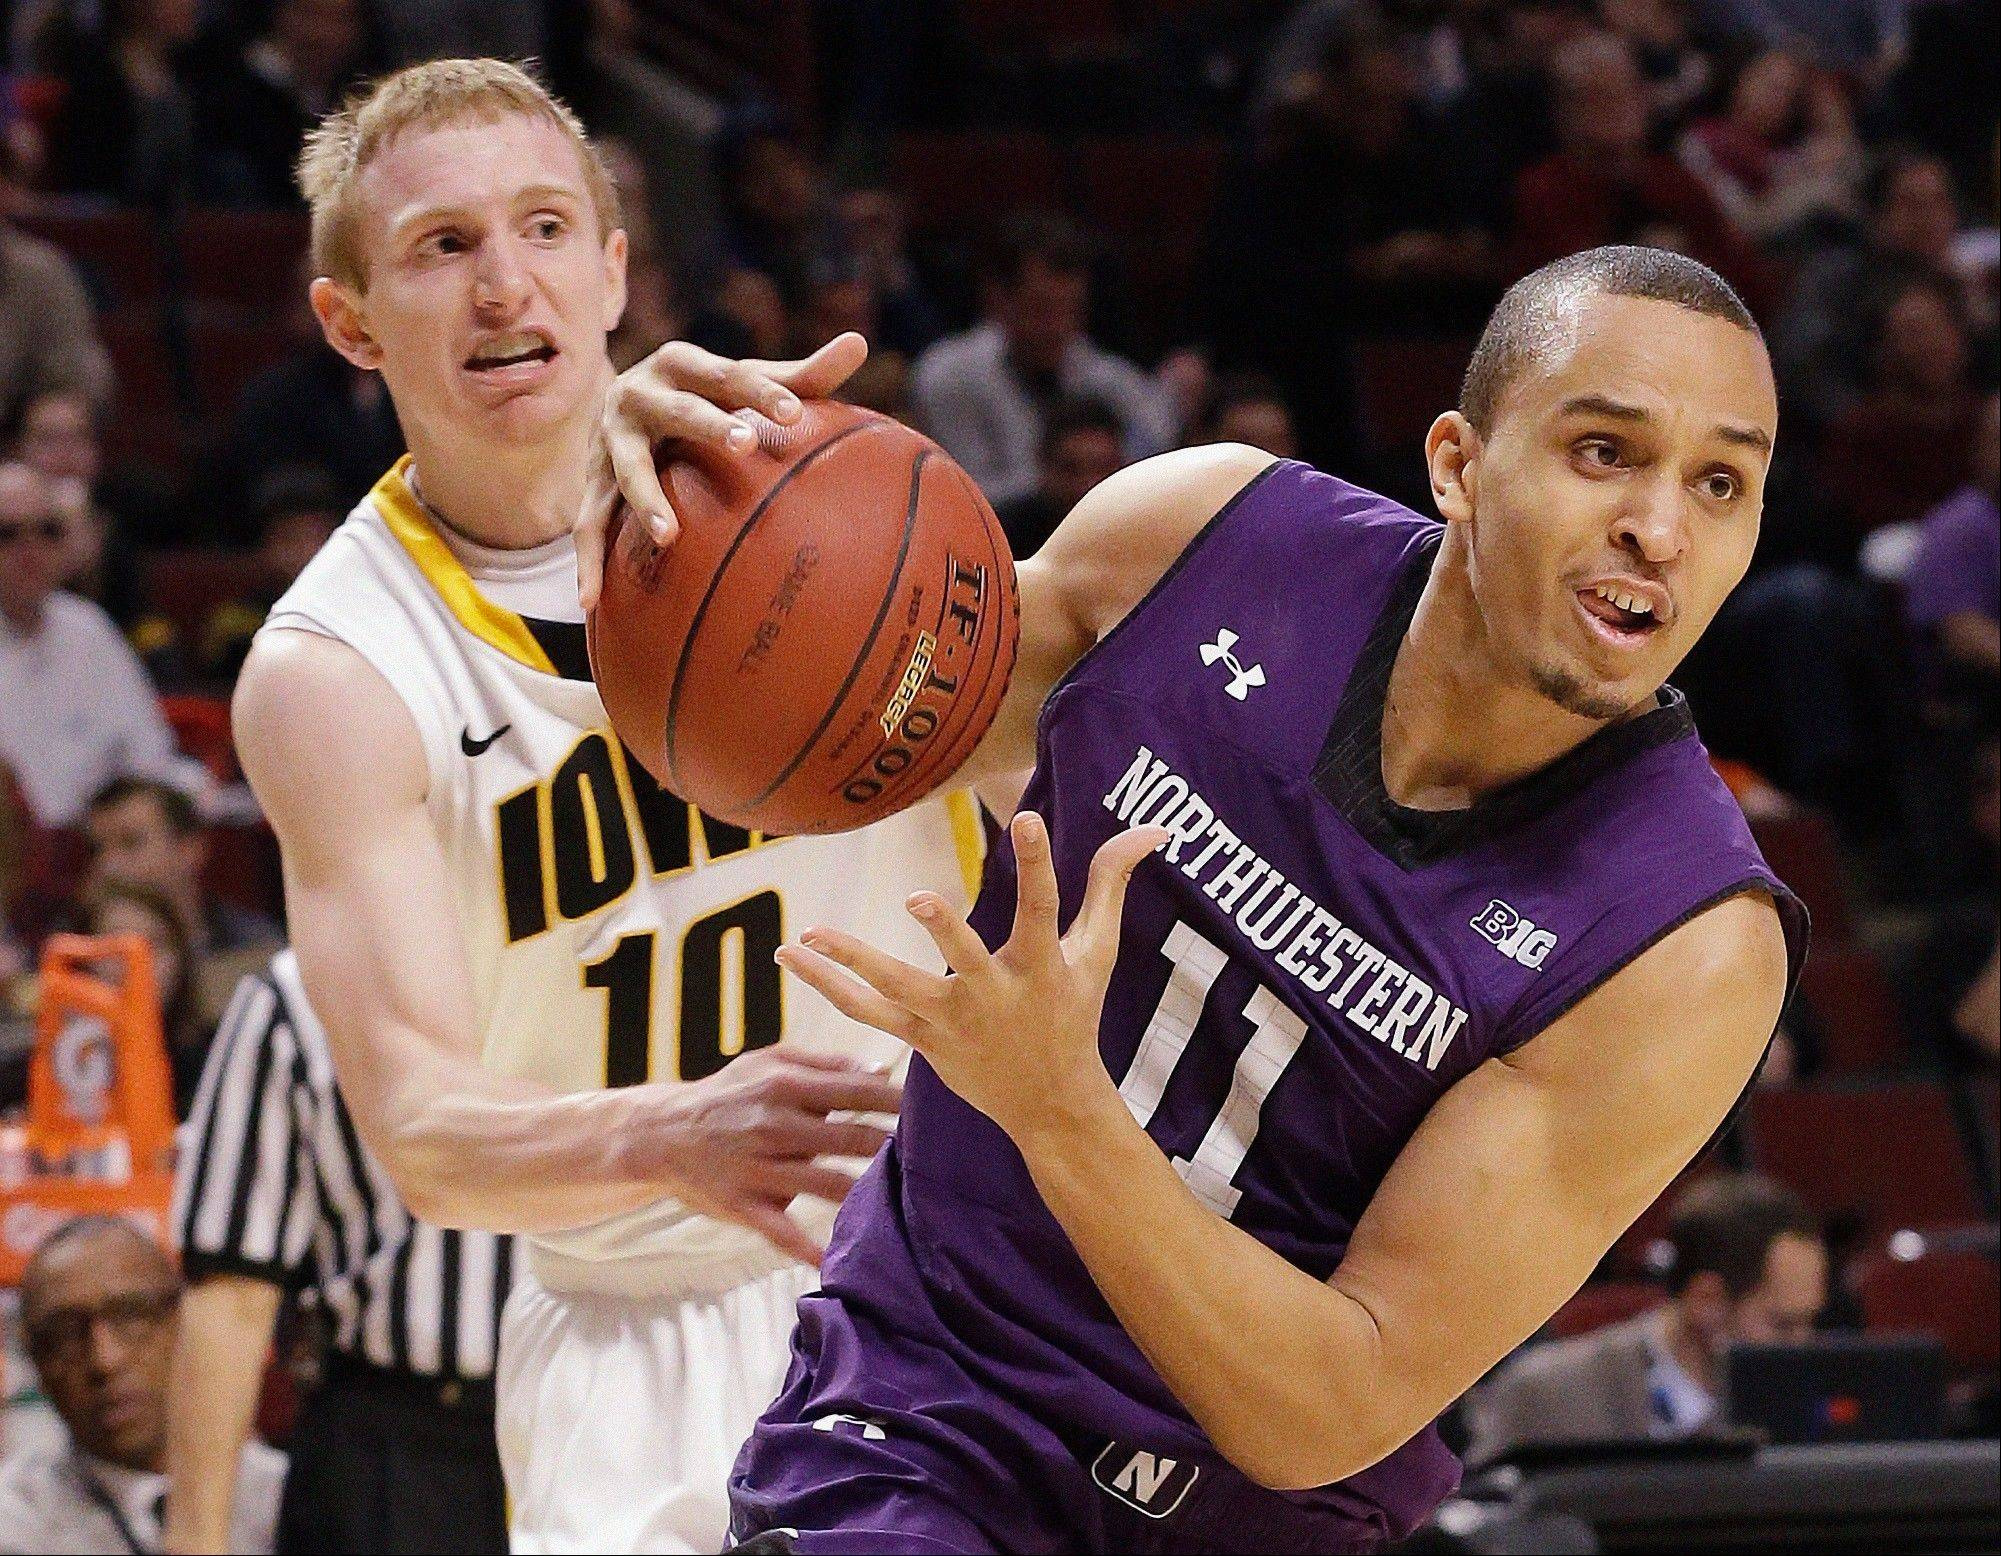 Northwestern�s Reggie Hearn (11) drives past Iowa�s Mike Gesell during the first half.